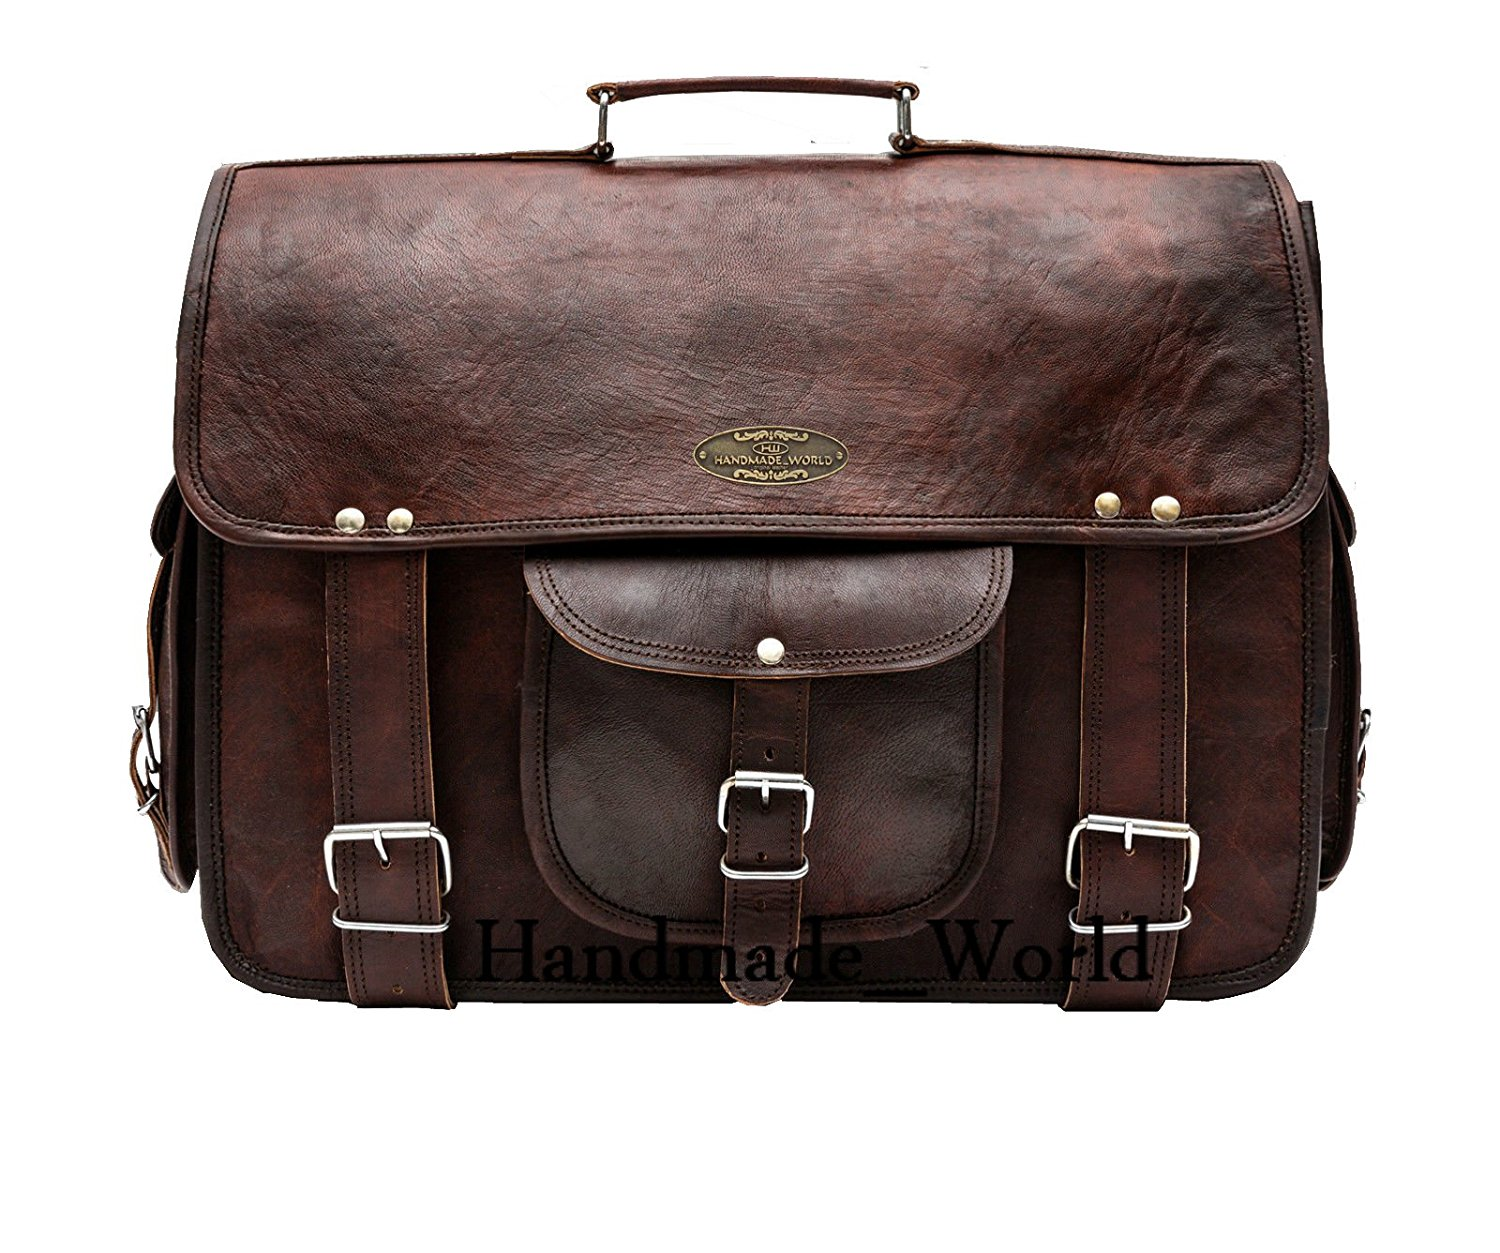 abe49880a6 Handmade_World leather messenger bags for men women 16